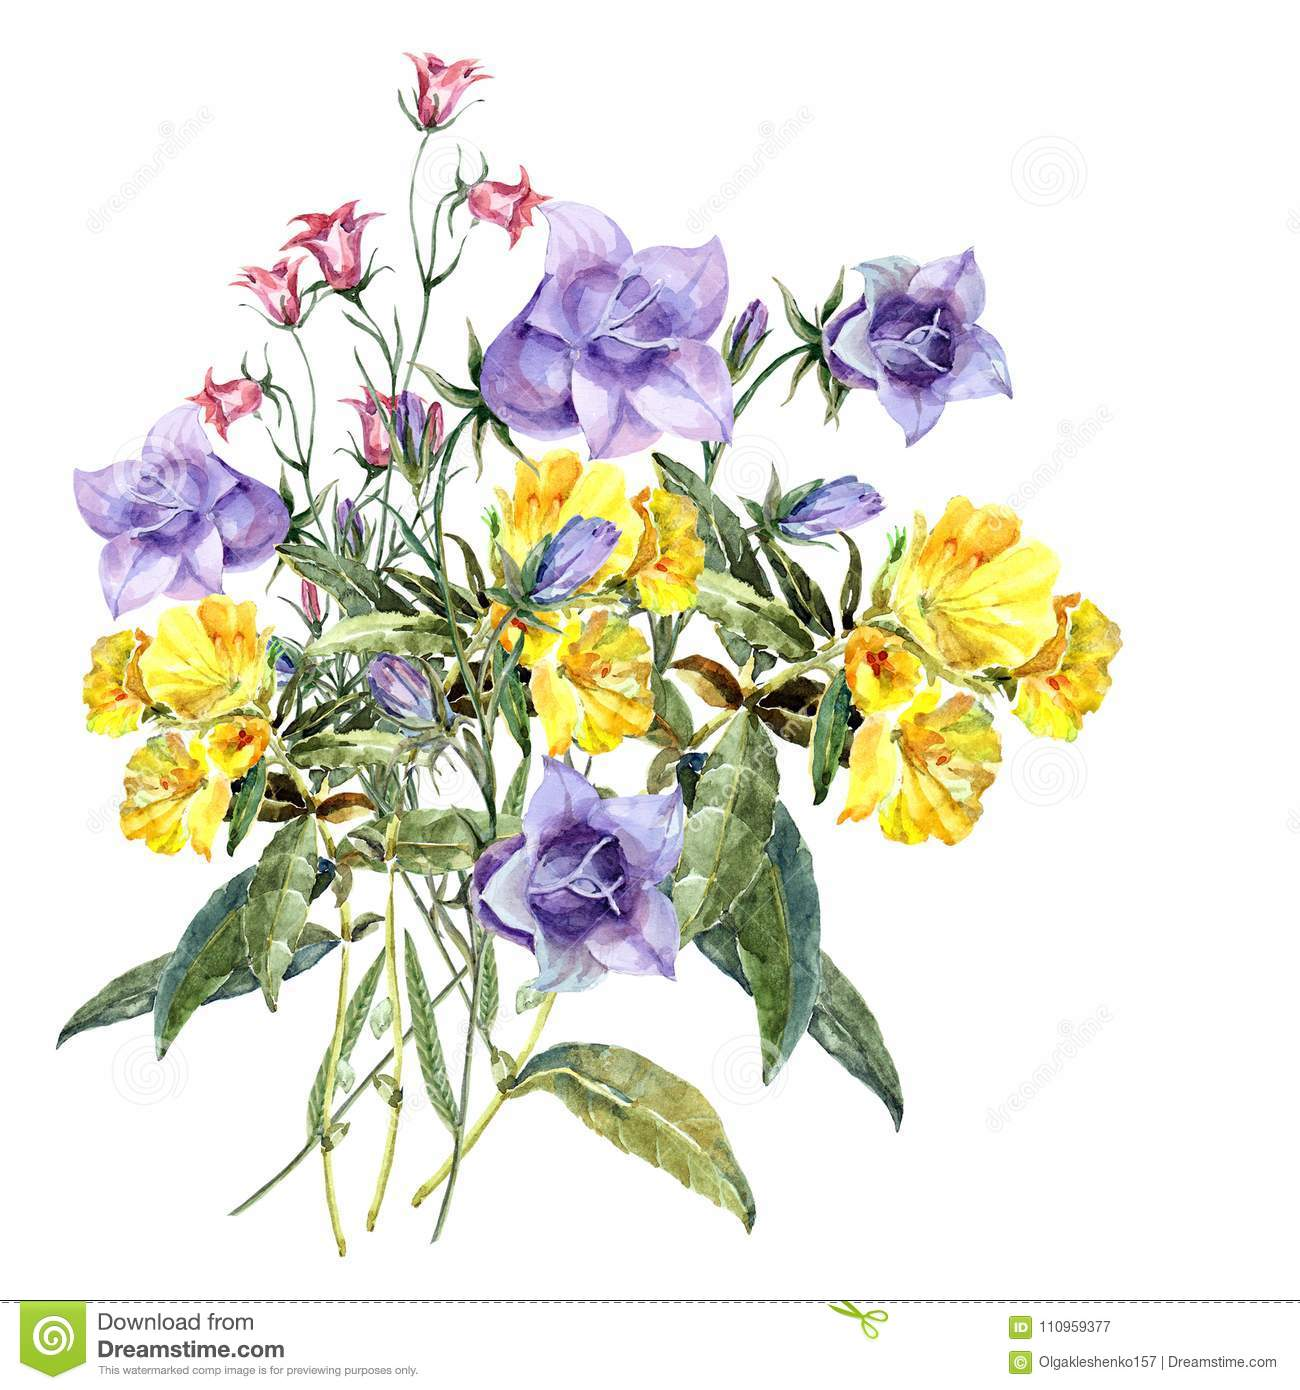 Watercolor bouquet meadow flowers floral pattern with blue and download watercolor bouquet meadow flowers floral pattern with blue and yellow flowers stock illustration izmirmasajfo